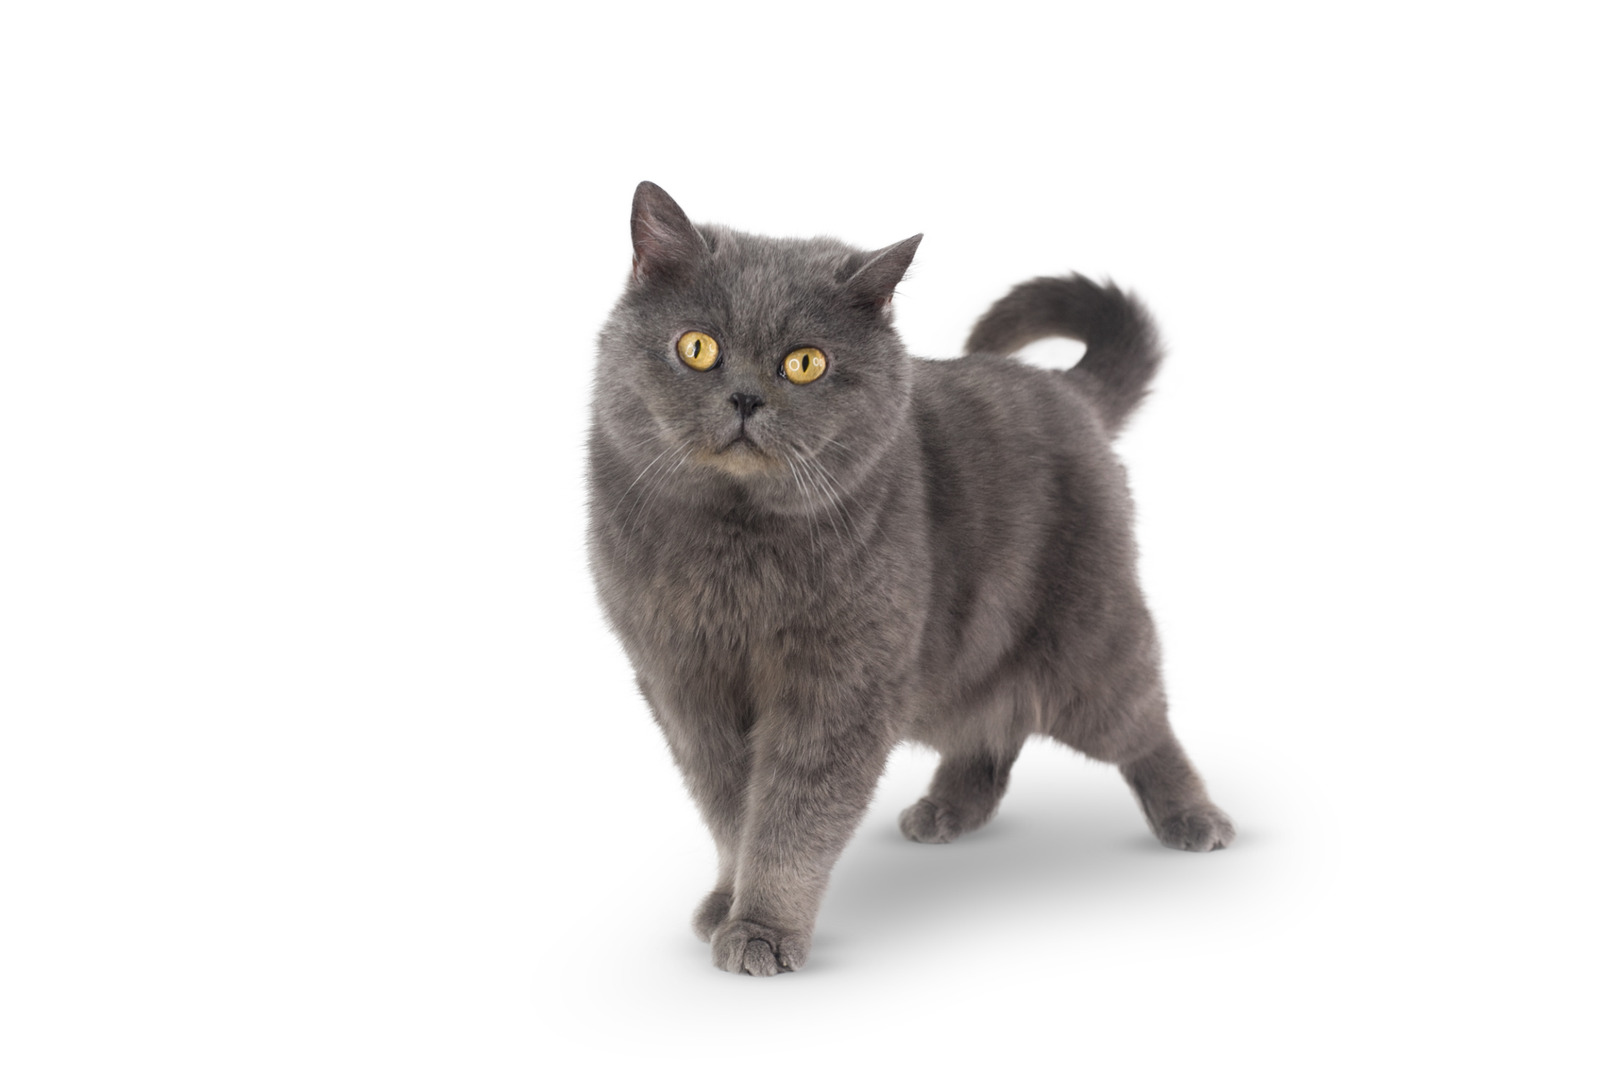 What a nice grey animal cat